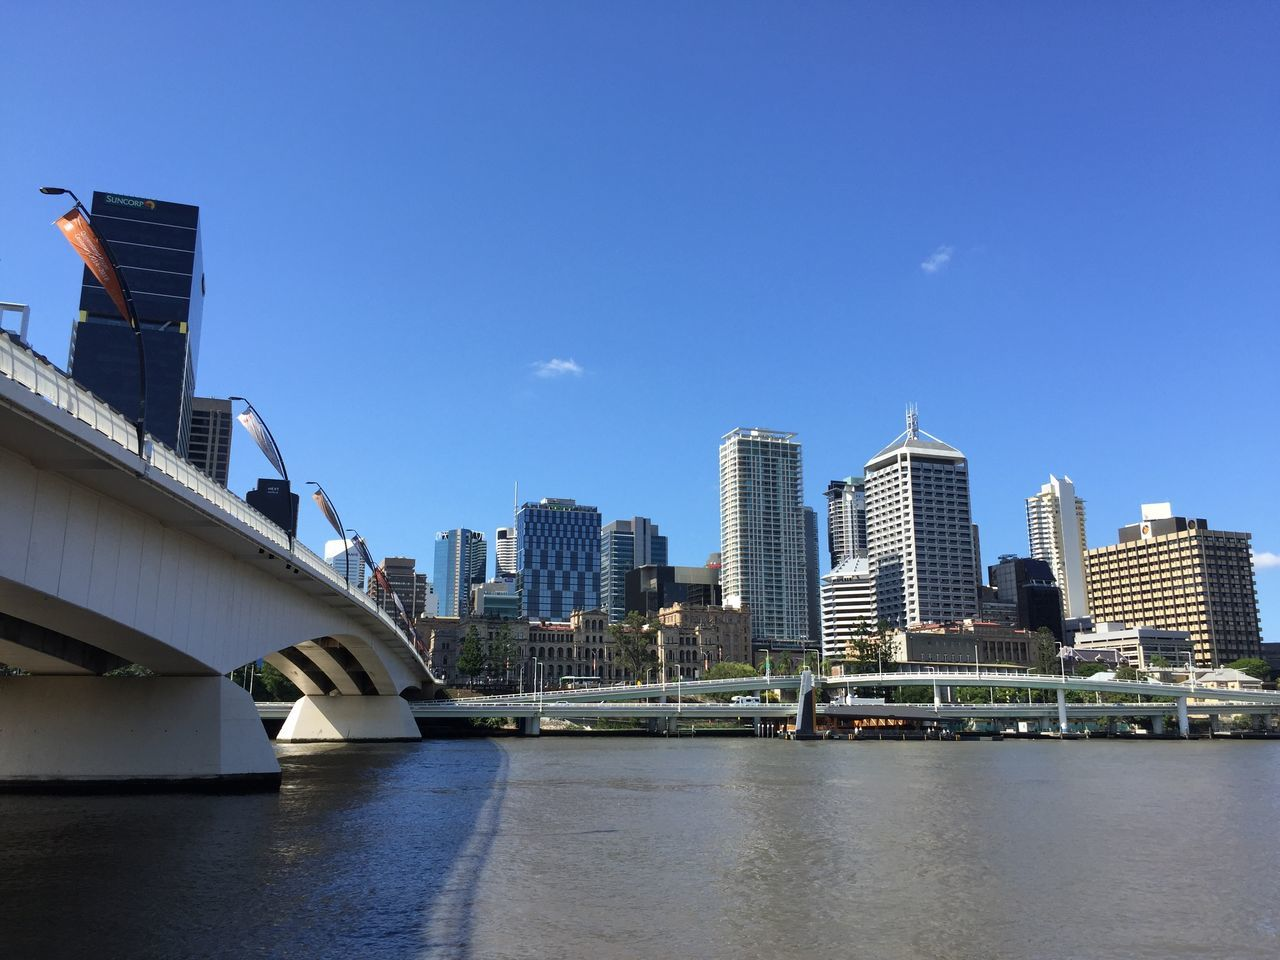 architecture, built structure, building exterior, waterfront, city, skyscraper, modern, bridge - man made structure, river, connection, water, day, outdoors, cityscape, sky, urban skyline, travel destinations, blue, no people, nature